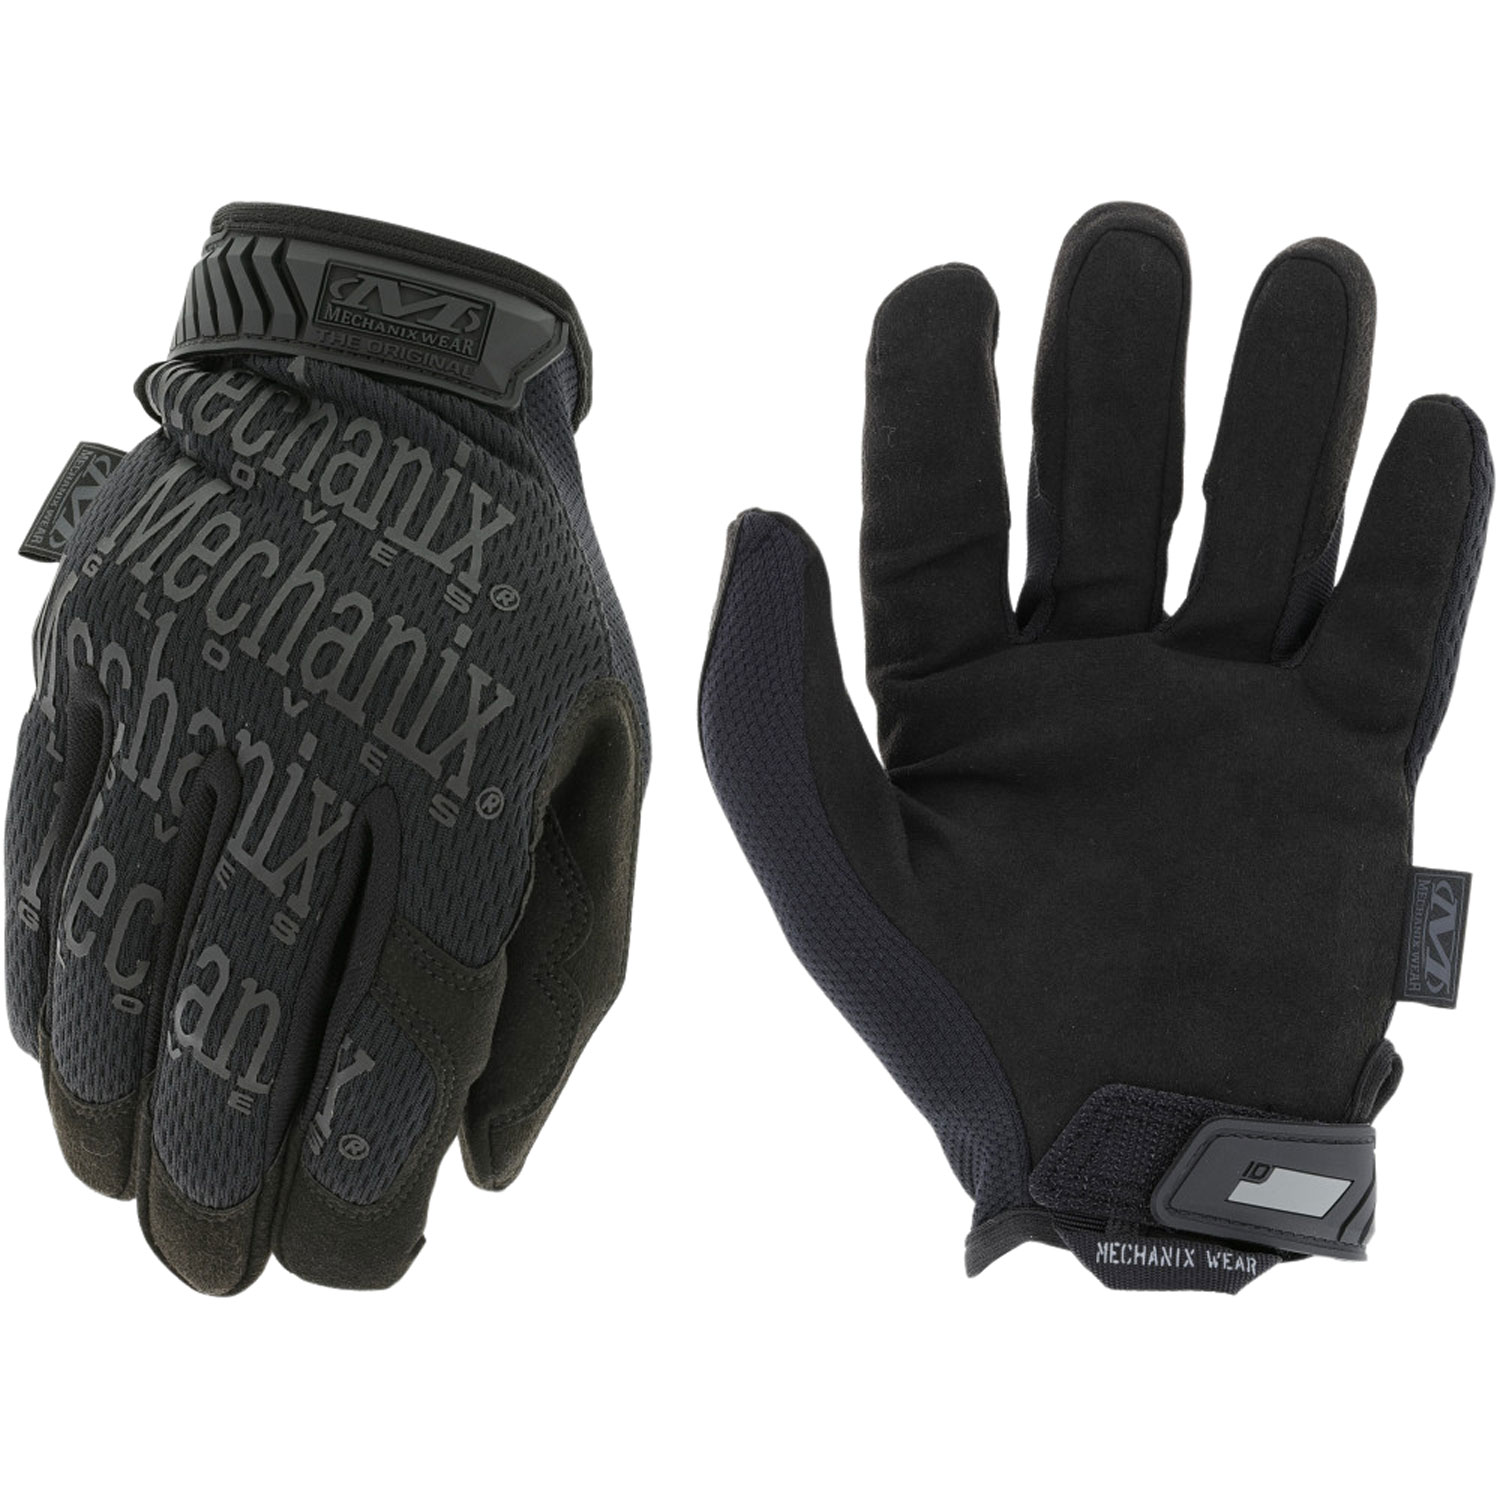 MECHANIX WEAR MG-55-008 Original Covert Small Black Synthetic Leather